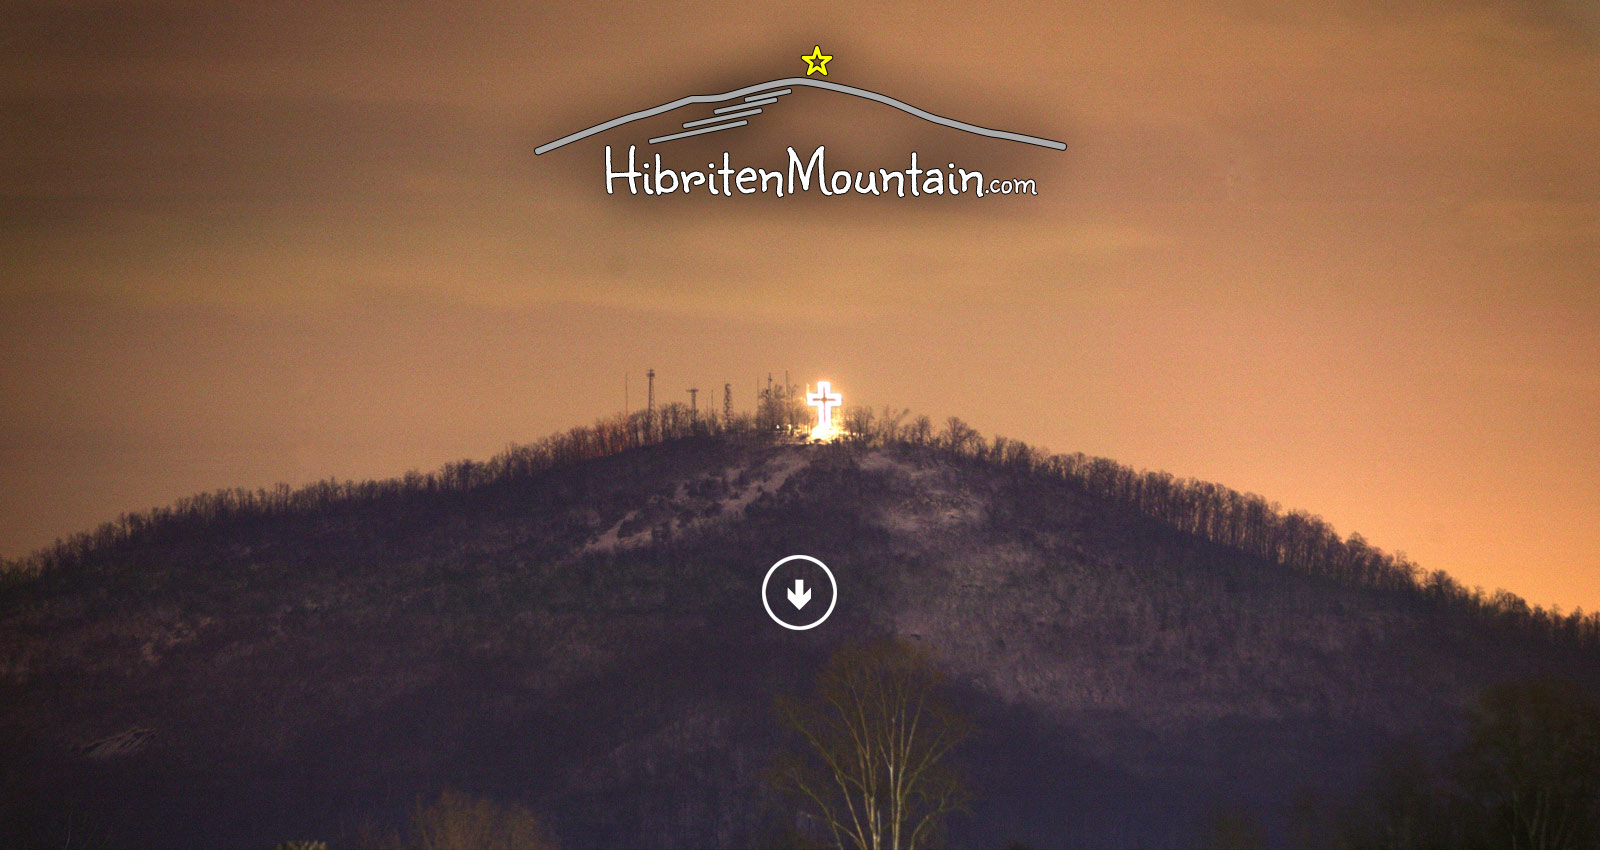 hibriten-mountain-home-page-002